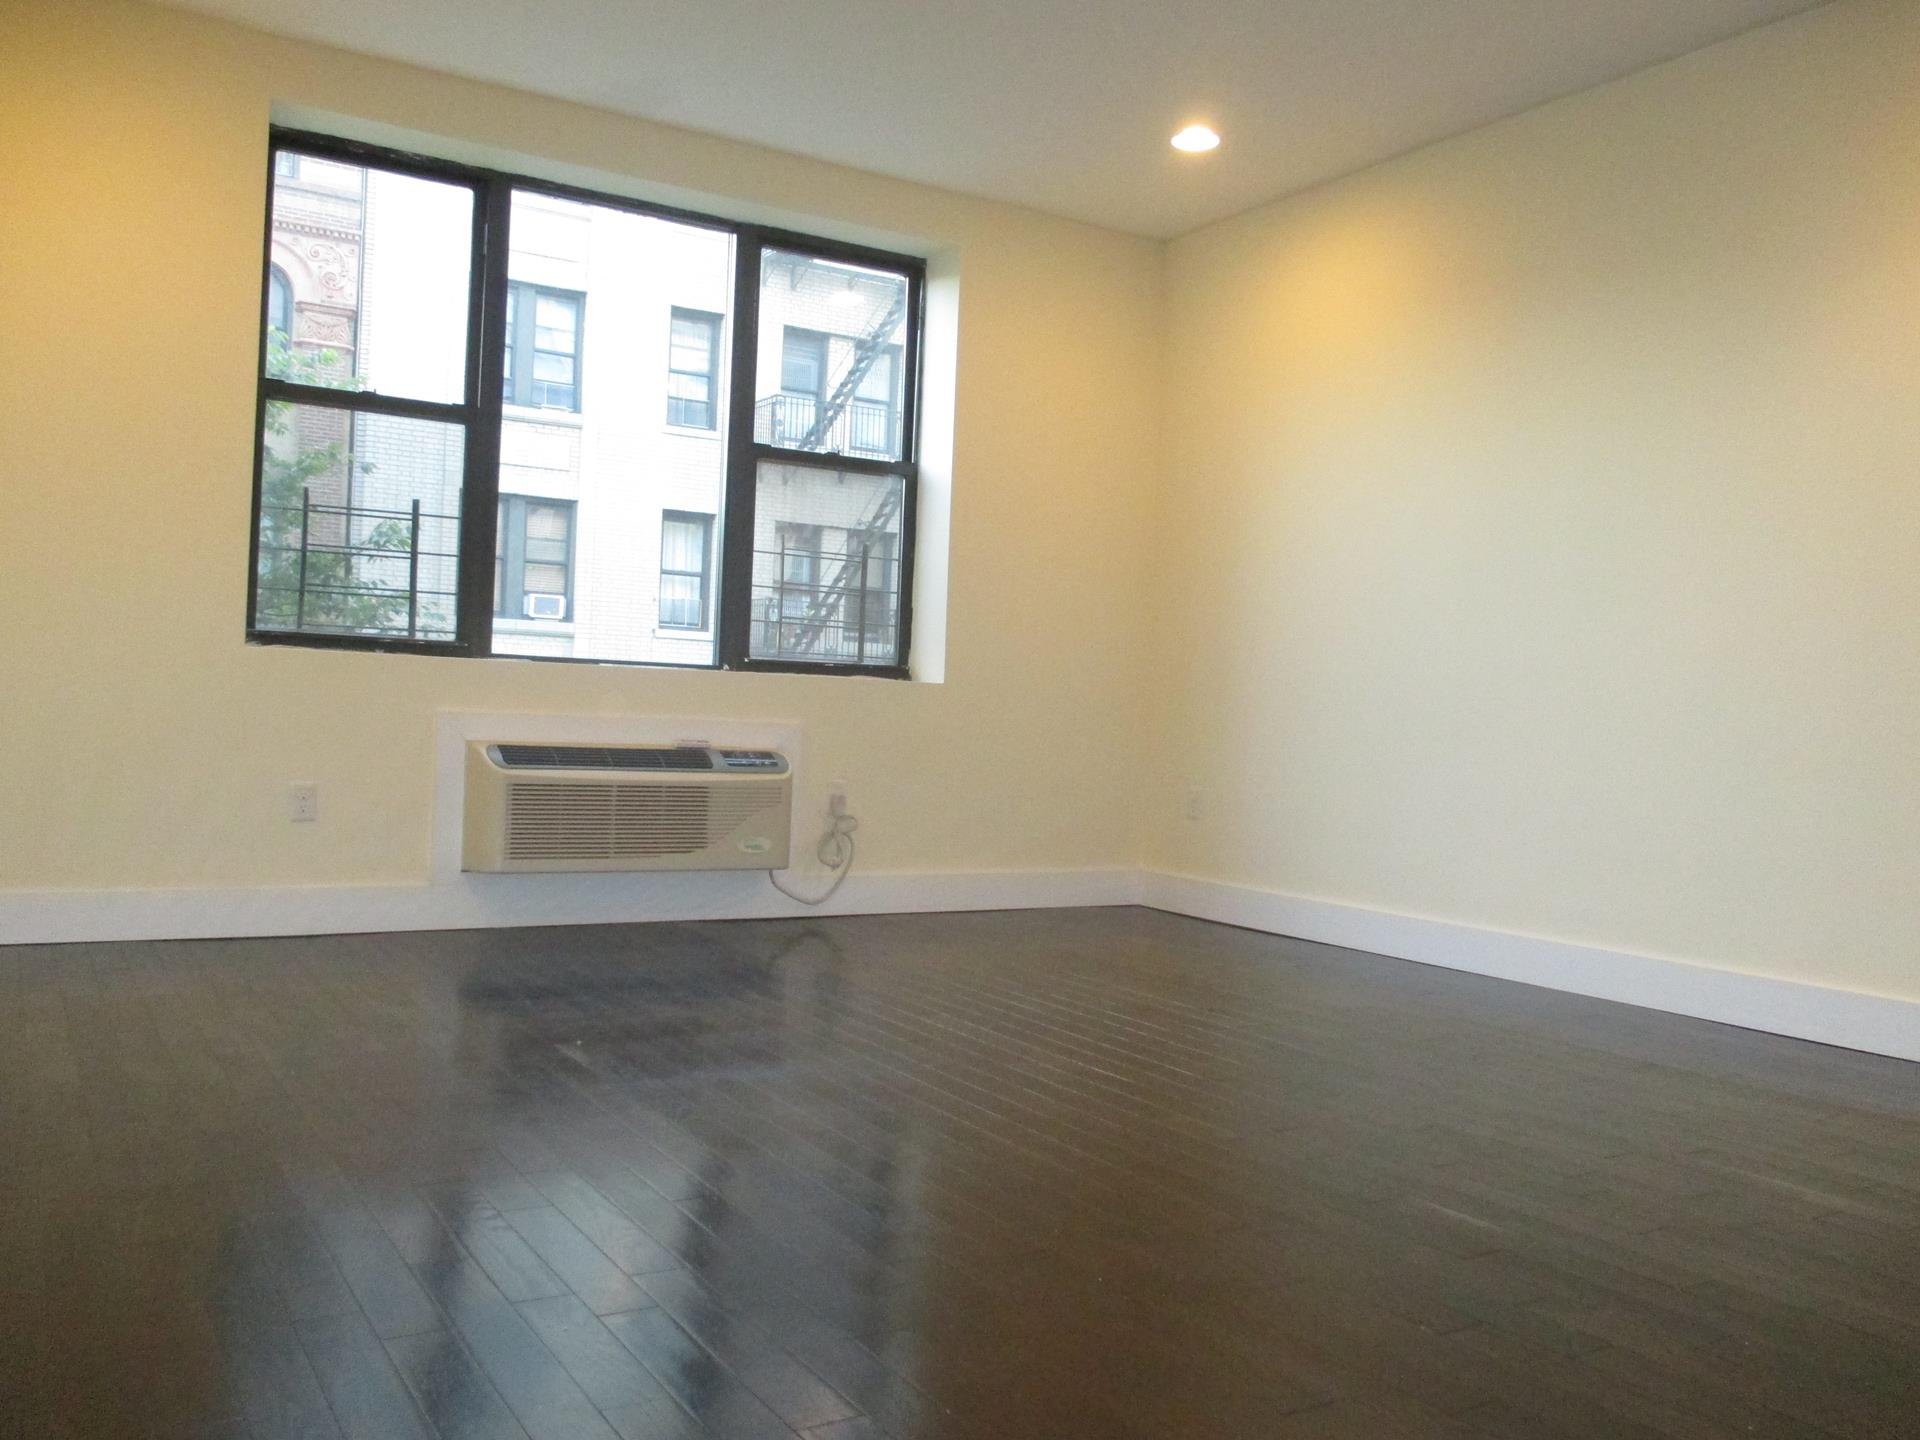 515 West 169th Street, 3A - Washington Heights, New York